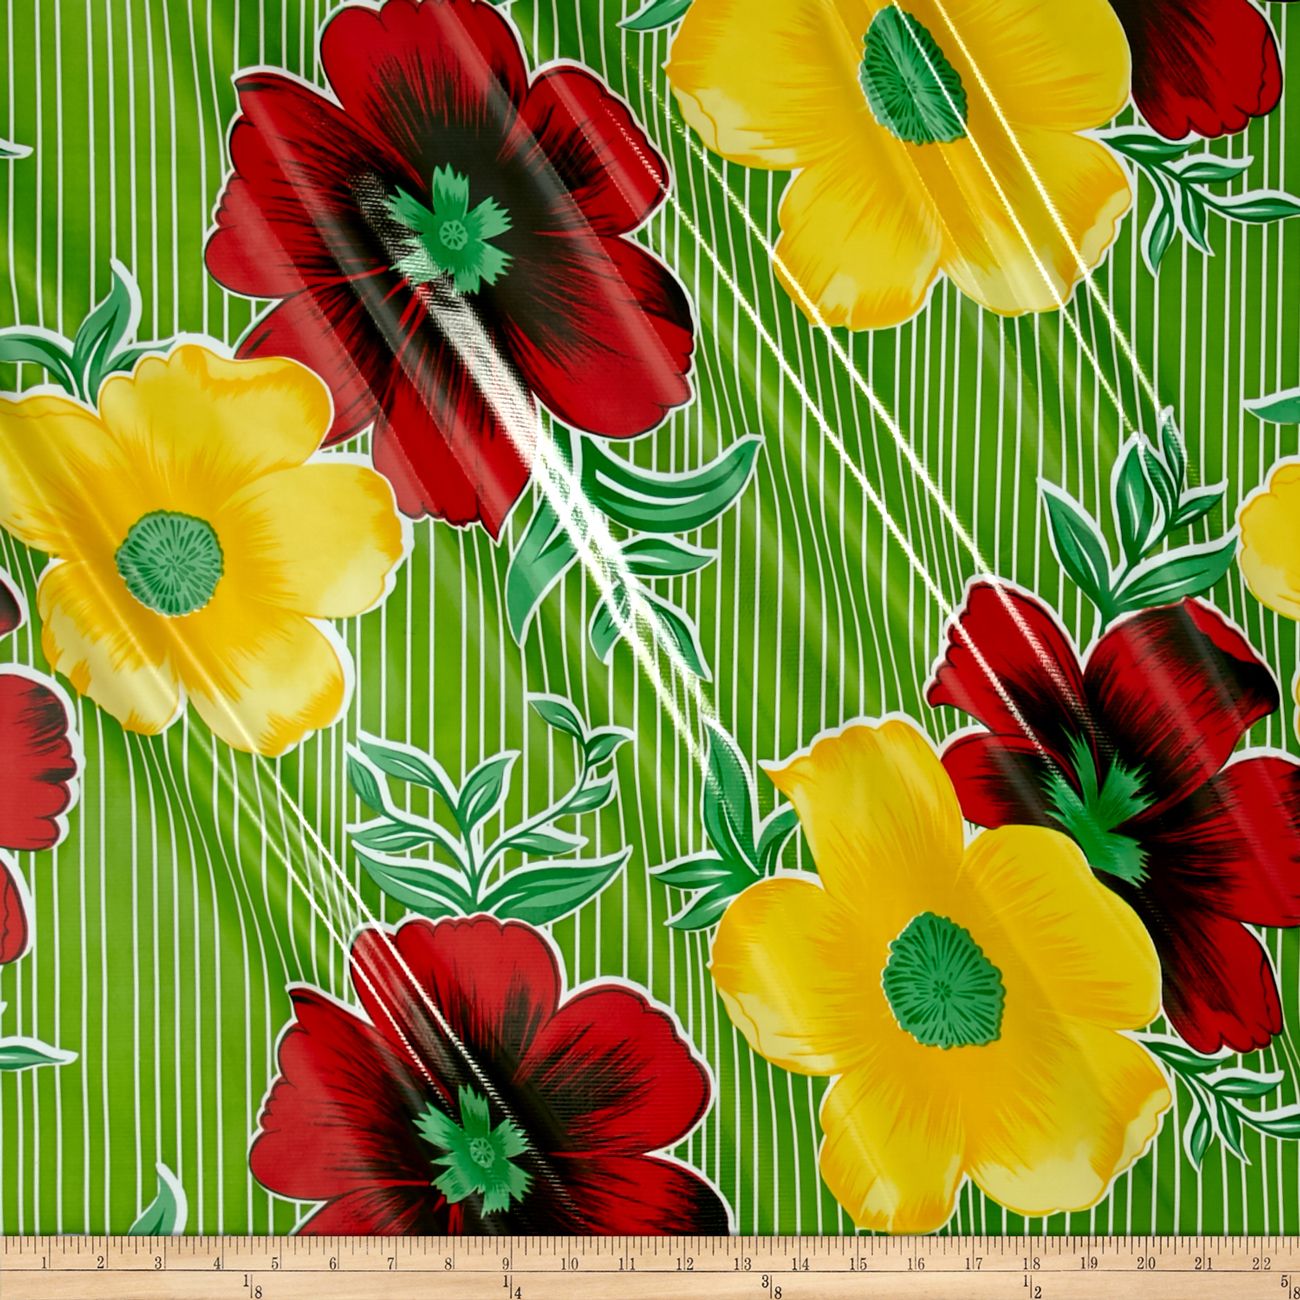 Oilcloth Mali Green Fabric by Oilcloth International in USA